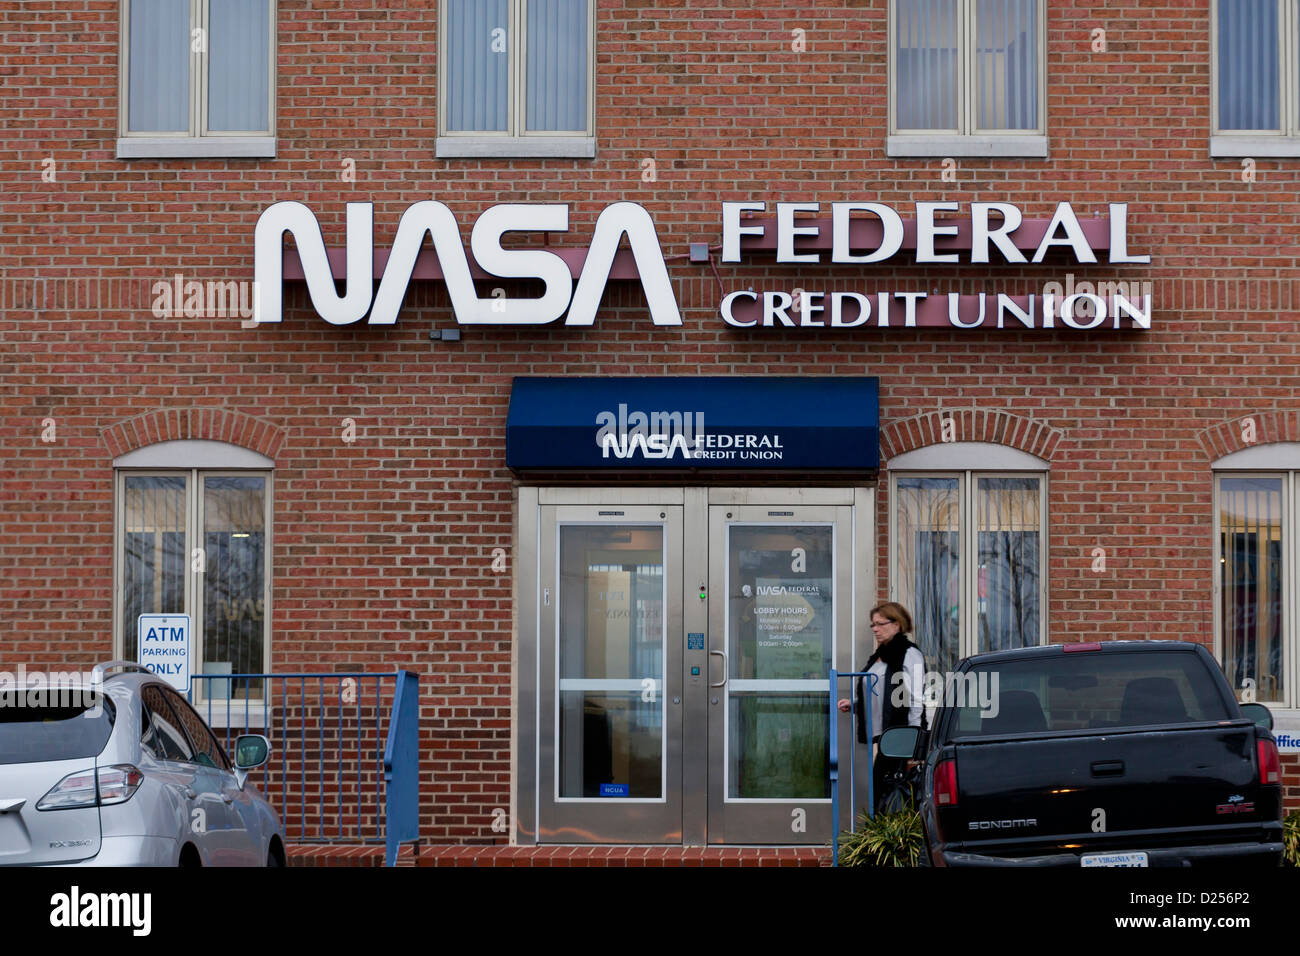 NASA Federal Credit Union building - Stock Image